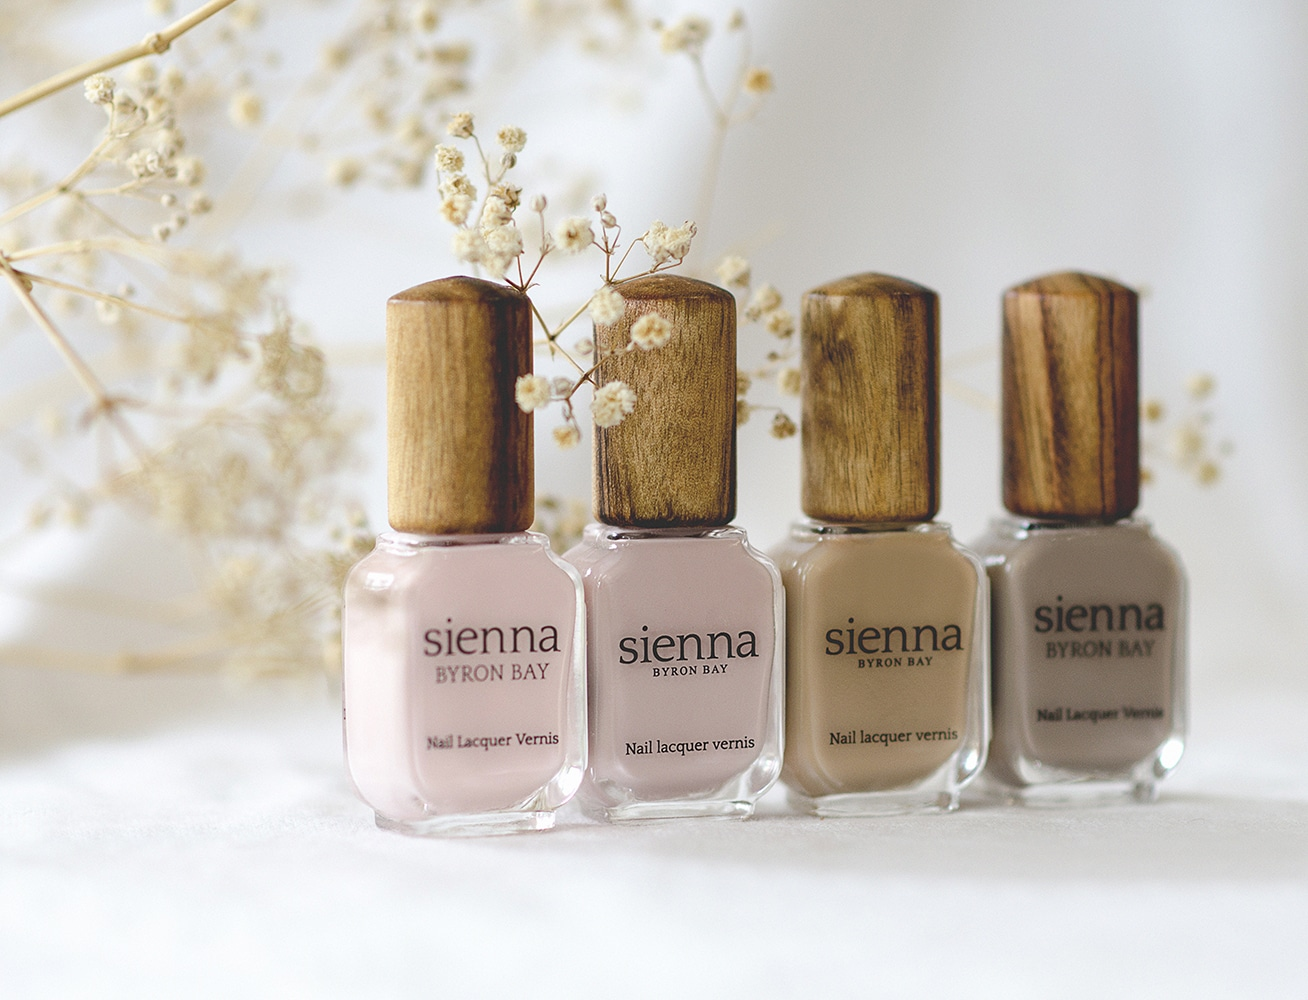 4 neutral nail polish bottles with timber cap by sienna with baby breath in the background